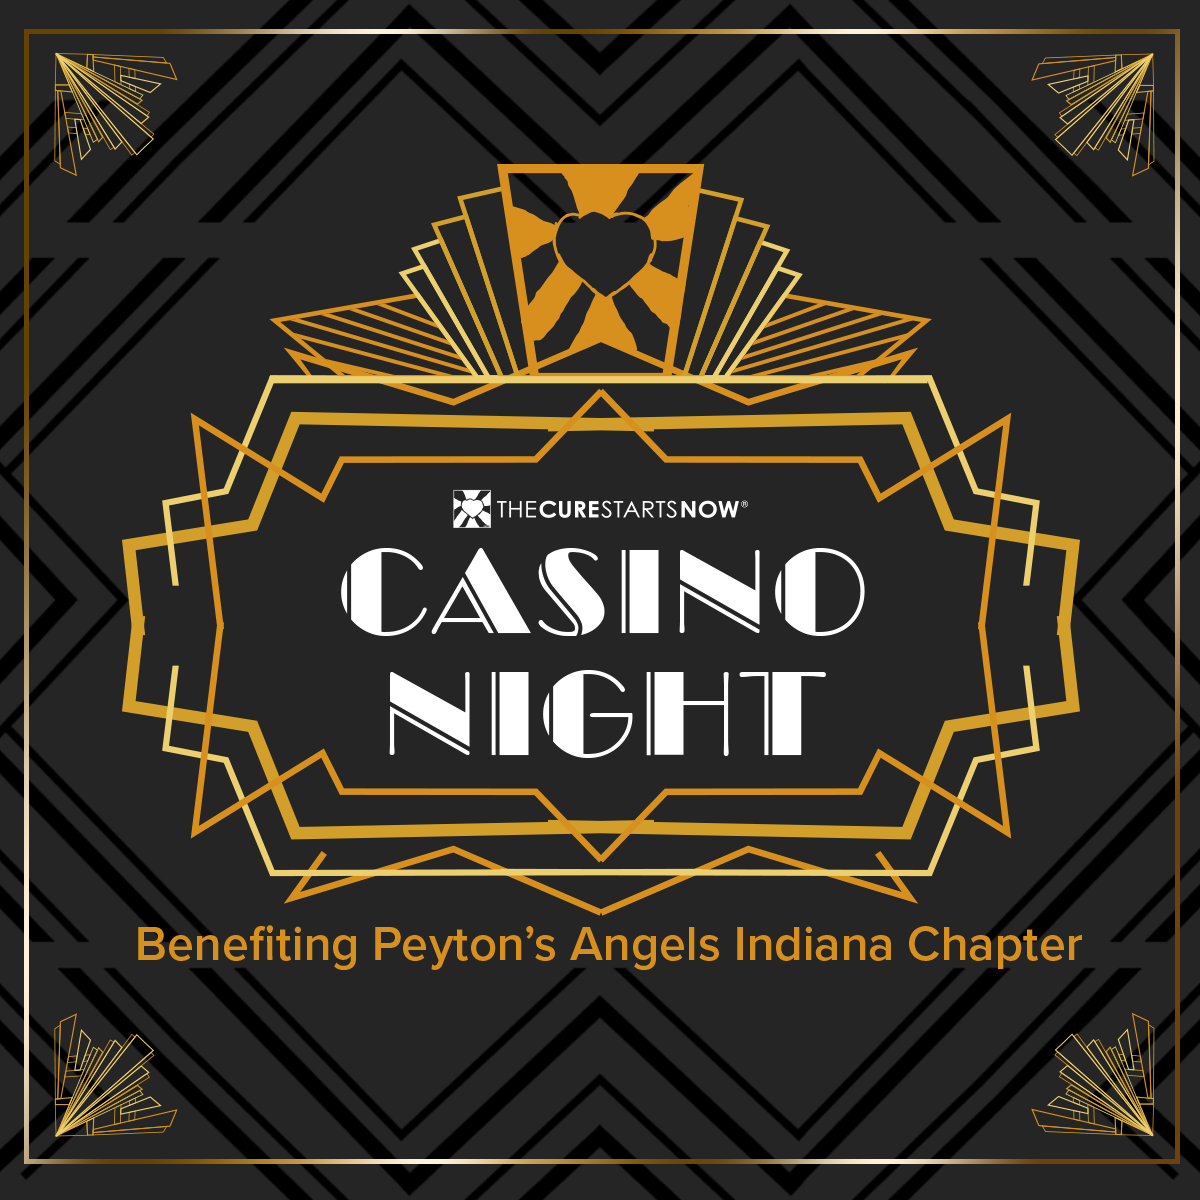 Indiana Casino Night